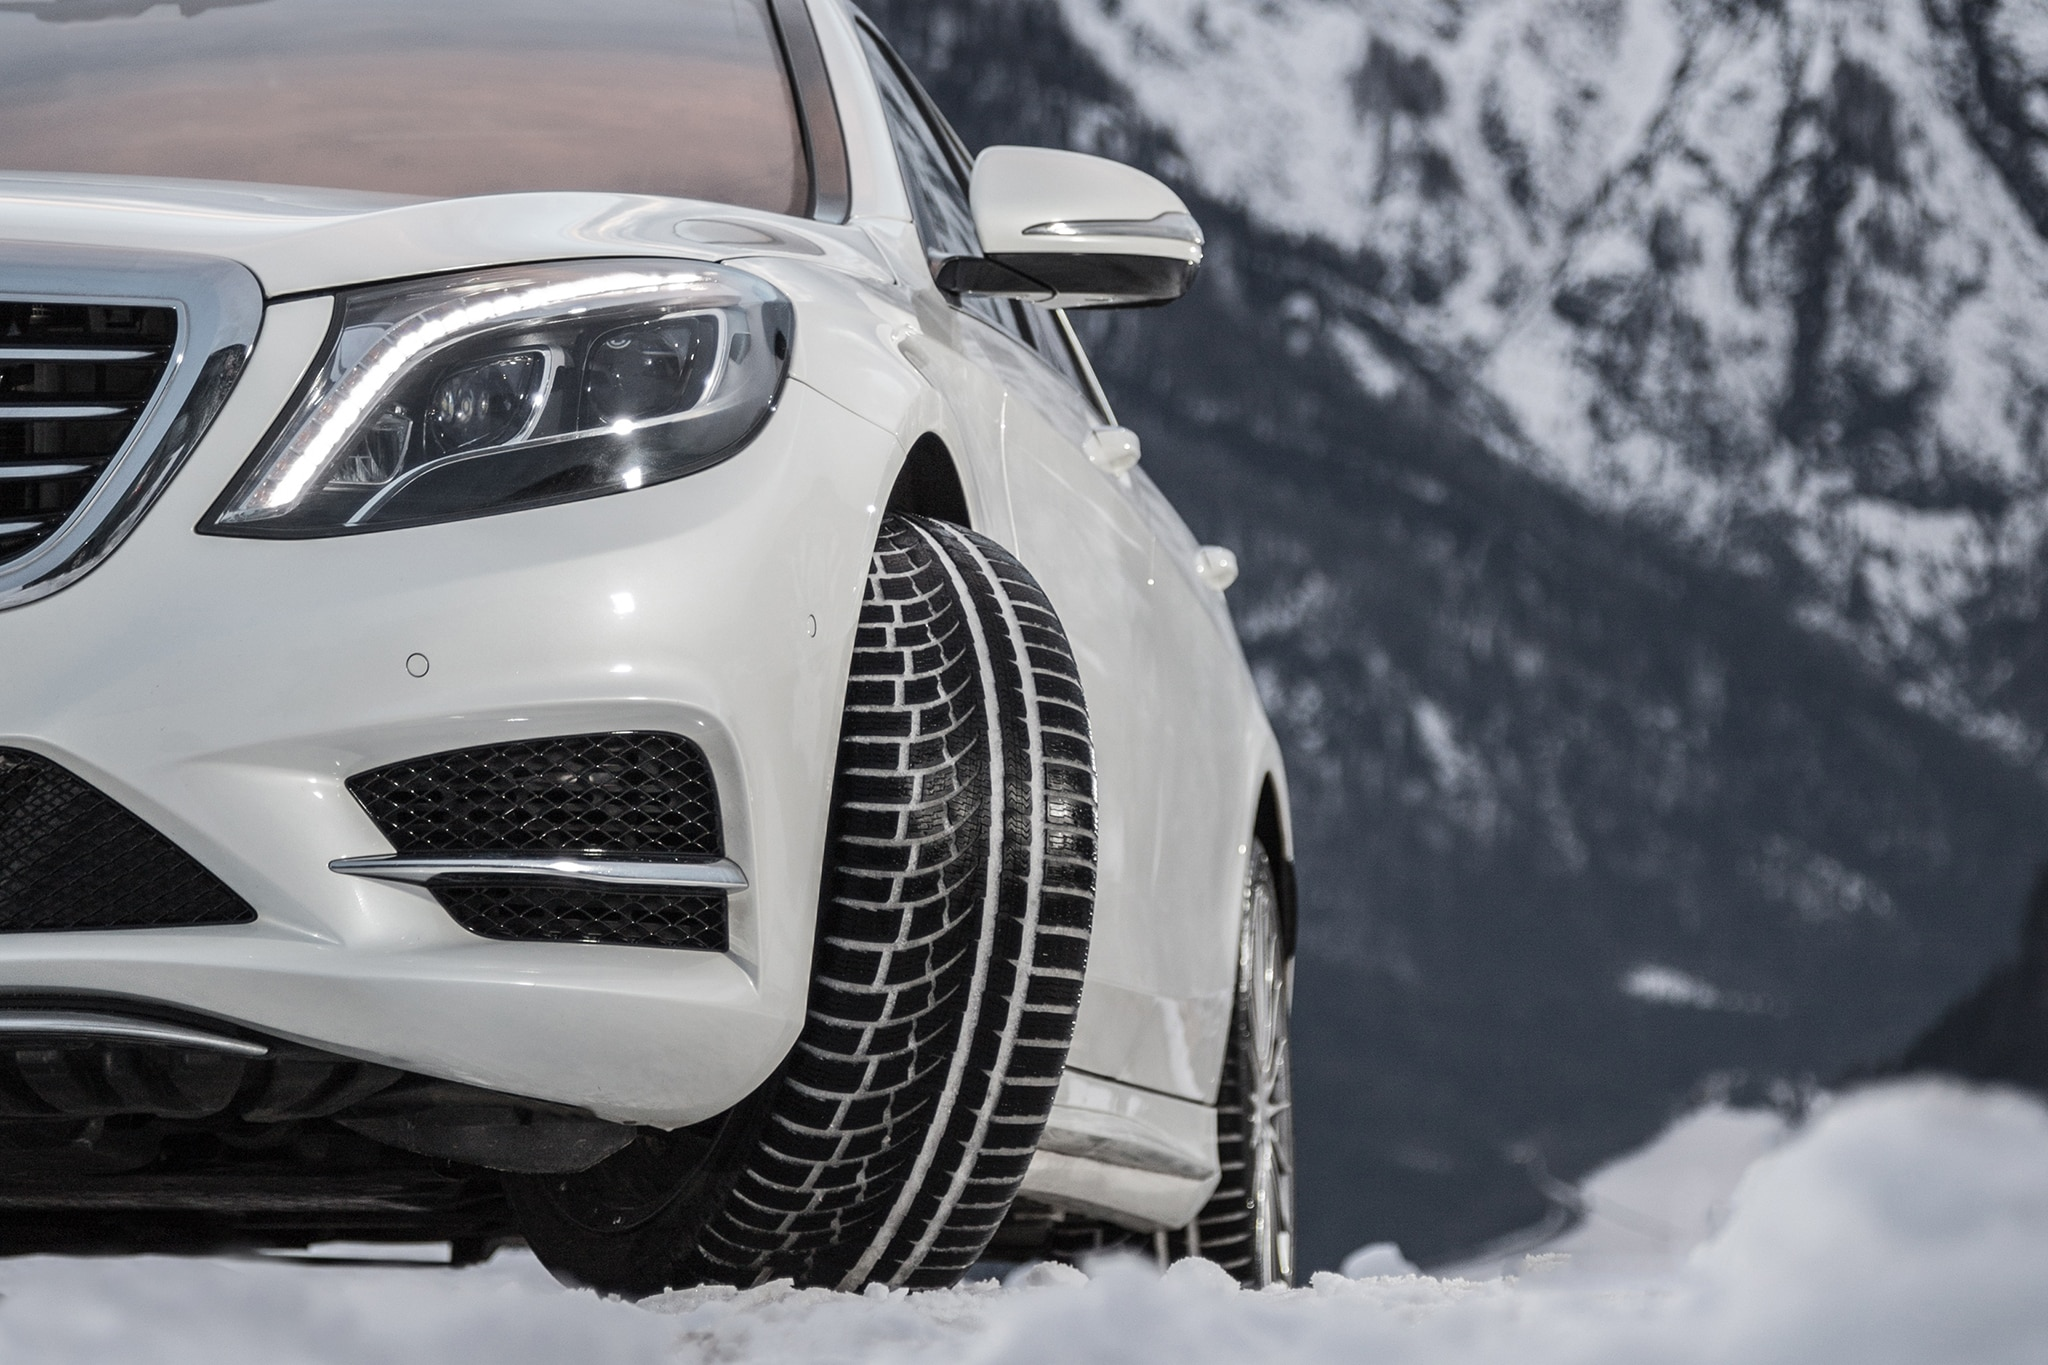 Nokian All Weather Tires >> Nokian WR G4 Tire: It's All-Weather, Not All-Season | Automobile Magazine